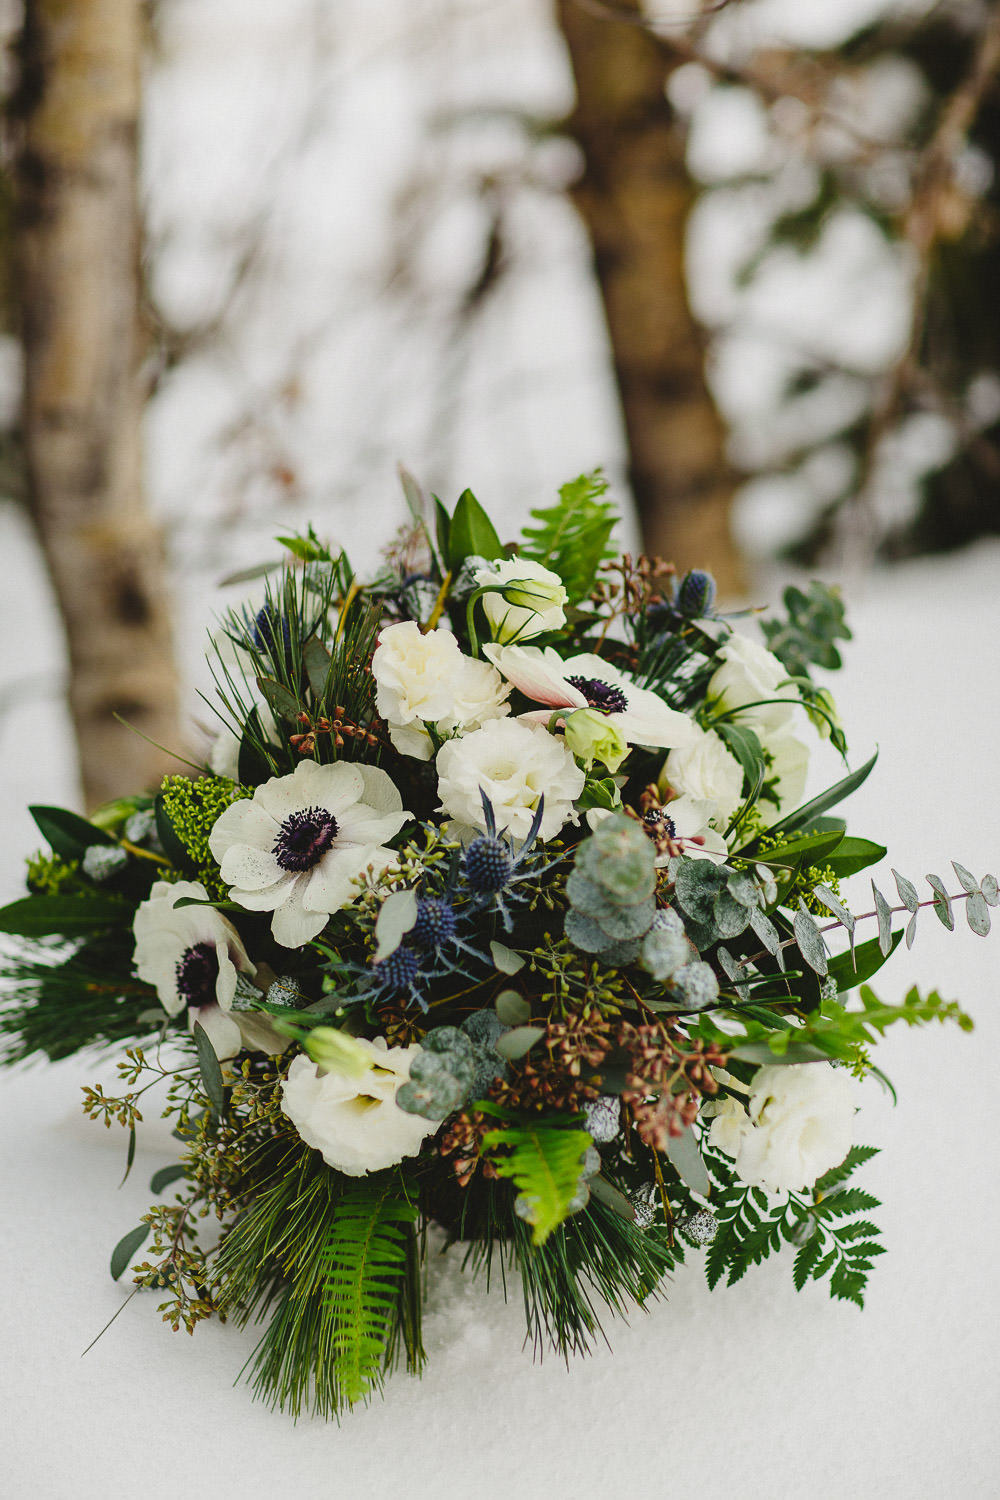 Floral arrangement in snow